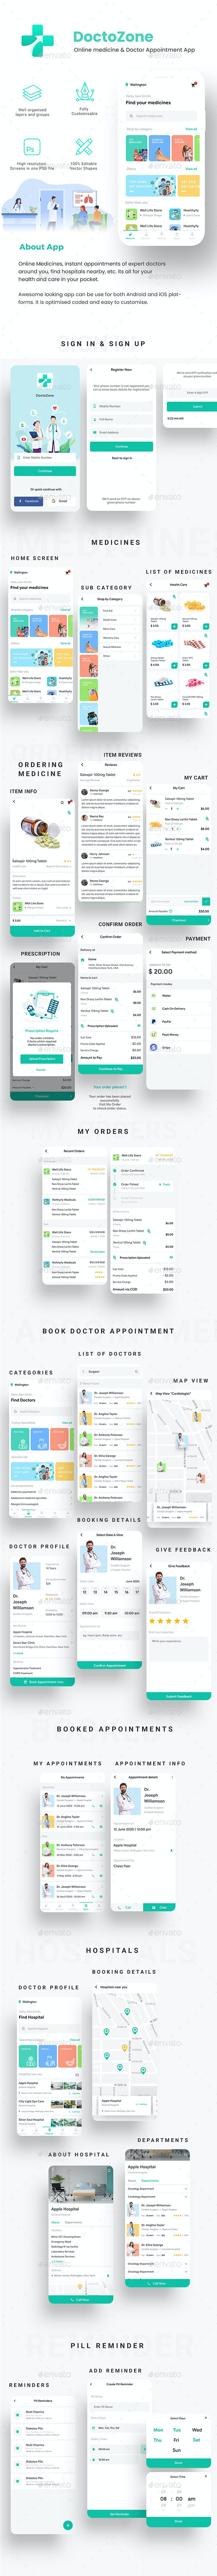 All in One Doctor App with User, Doctor & Delivery App UI Kit | DoctoZone - User Interfaces Web Elements